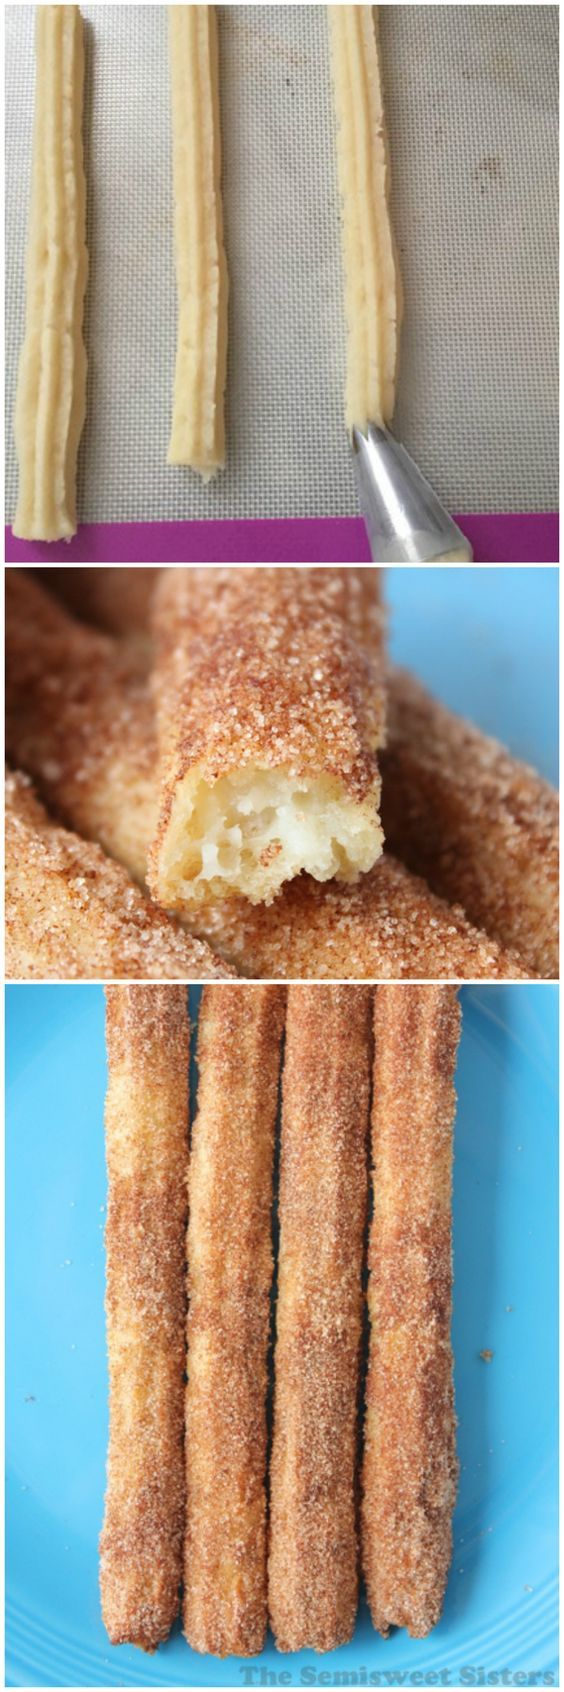 Oven Baked Churro Recipe, an easier & healthier way to make Churros. I love making/eating churros but I hate frying them, if your like me you should give this baked version a try.: